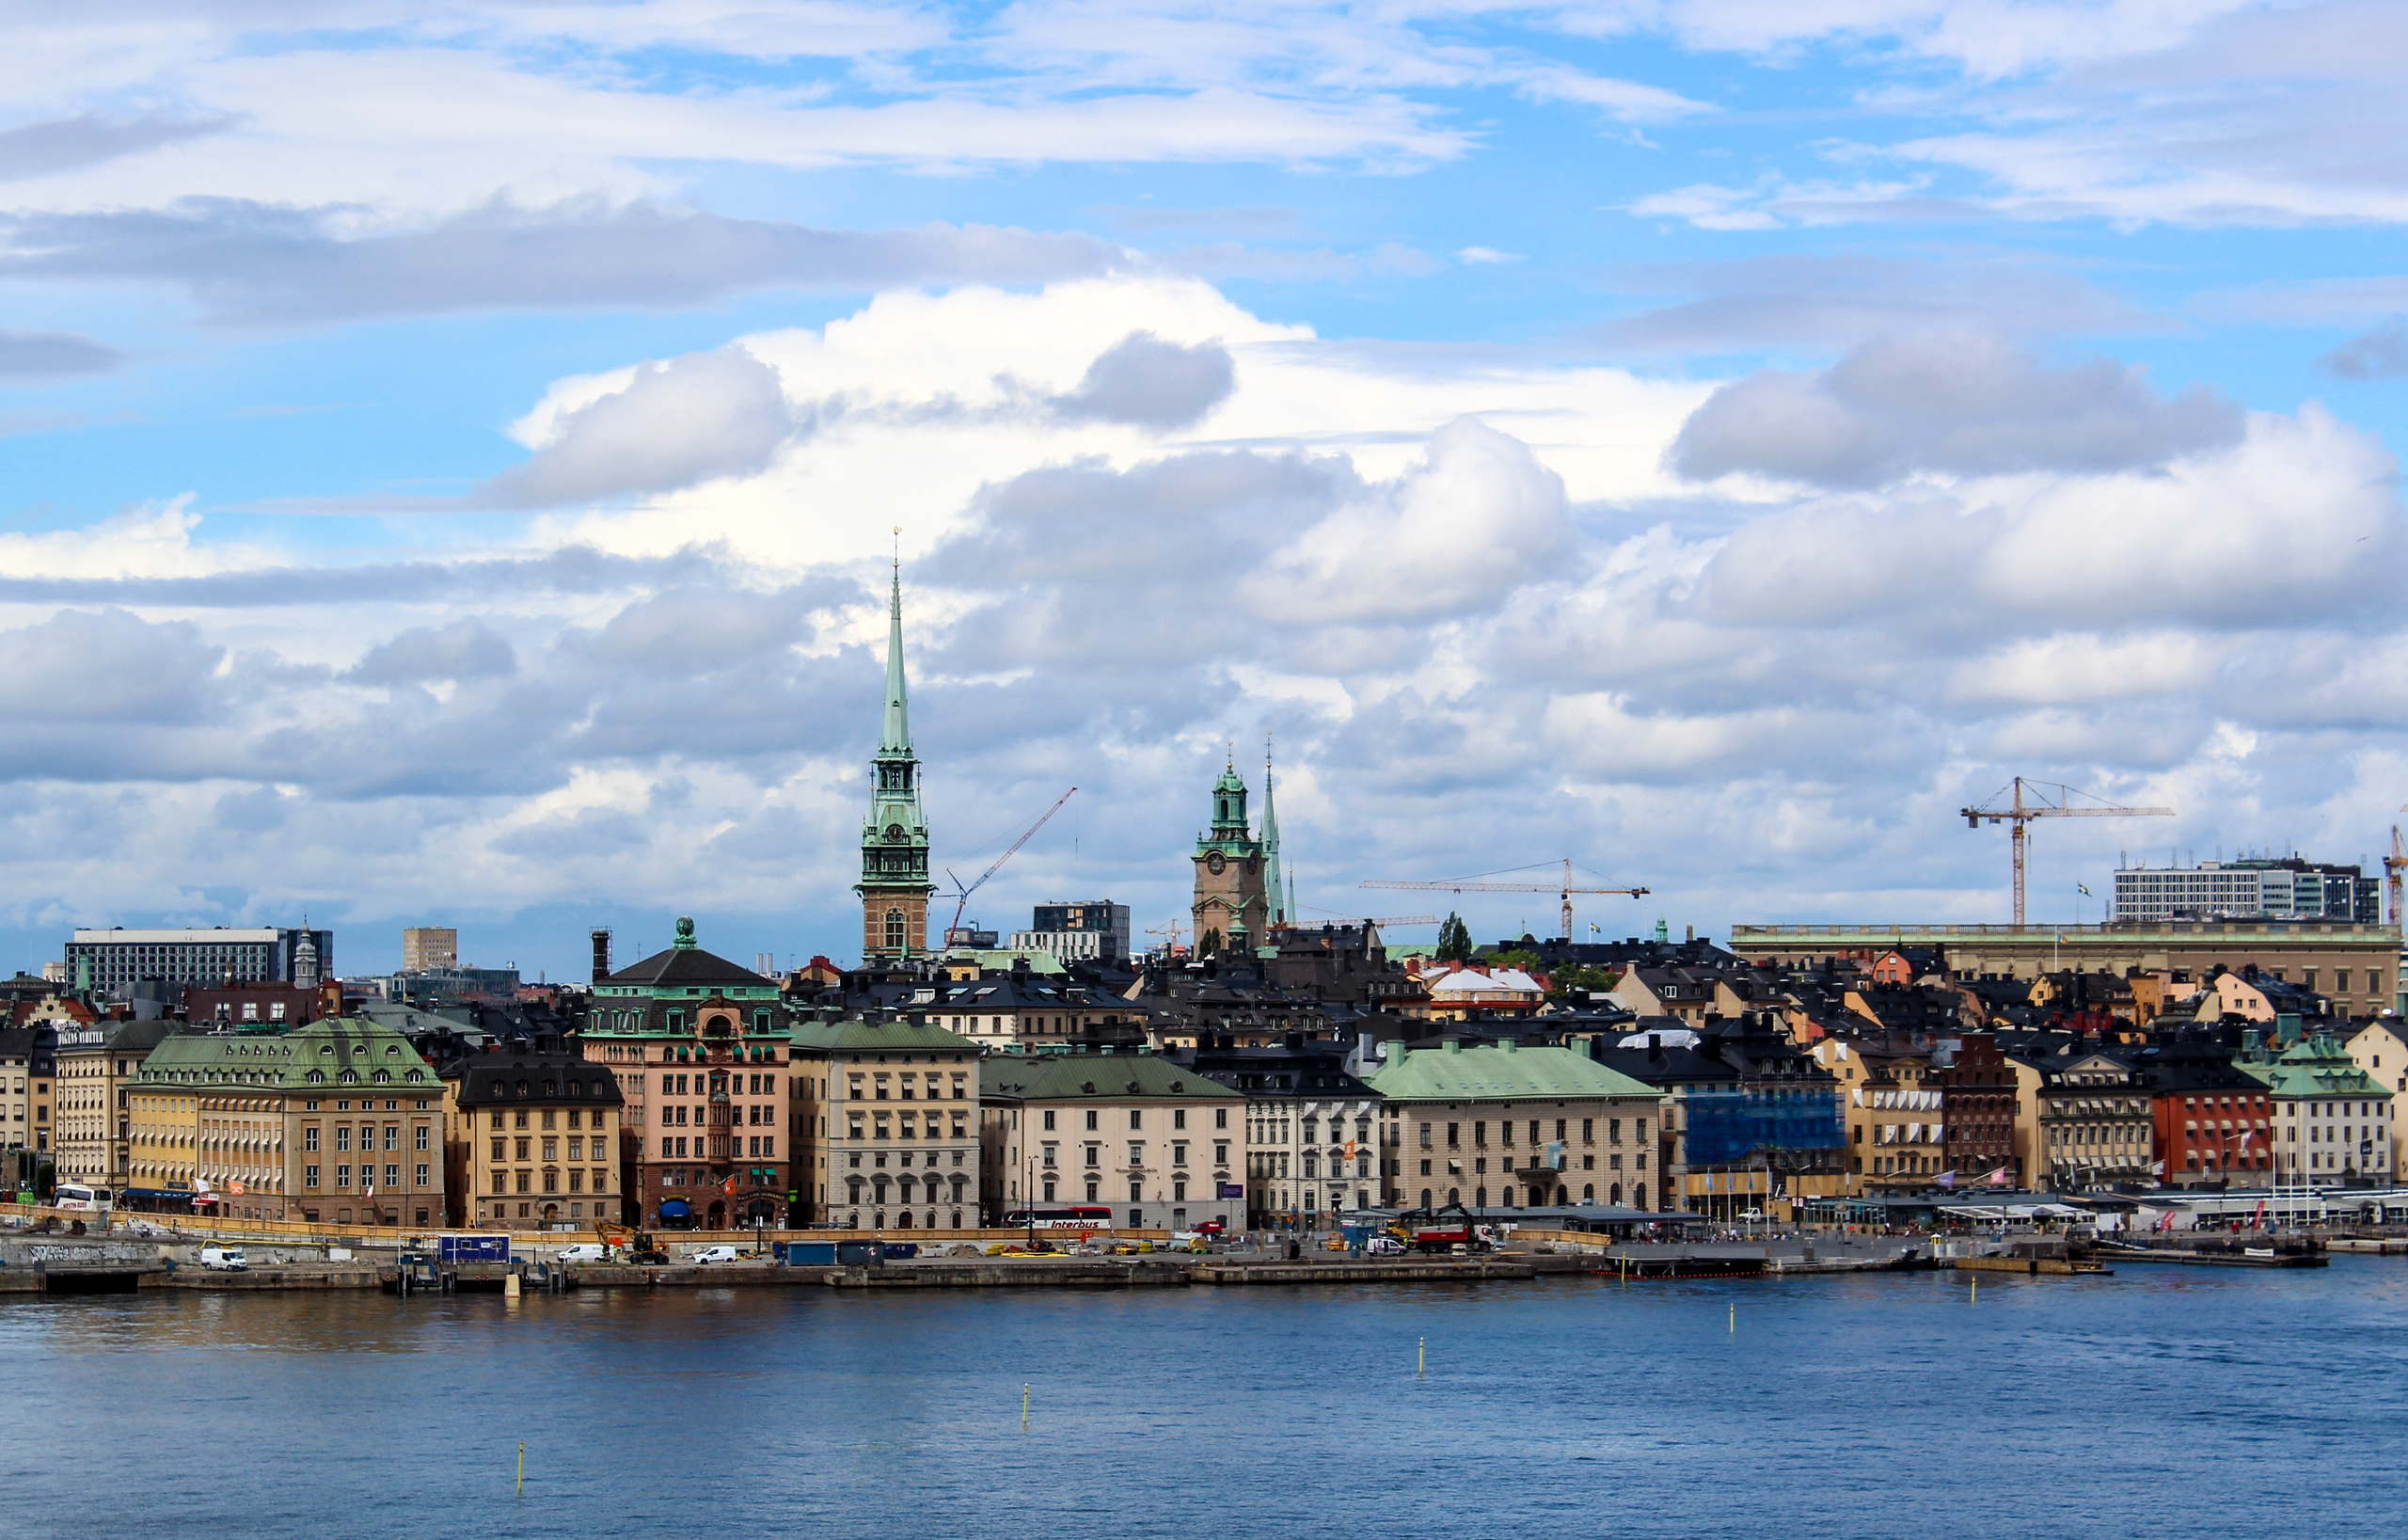 tips for traveling alone for the first time: choose a safe destination like stockholm